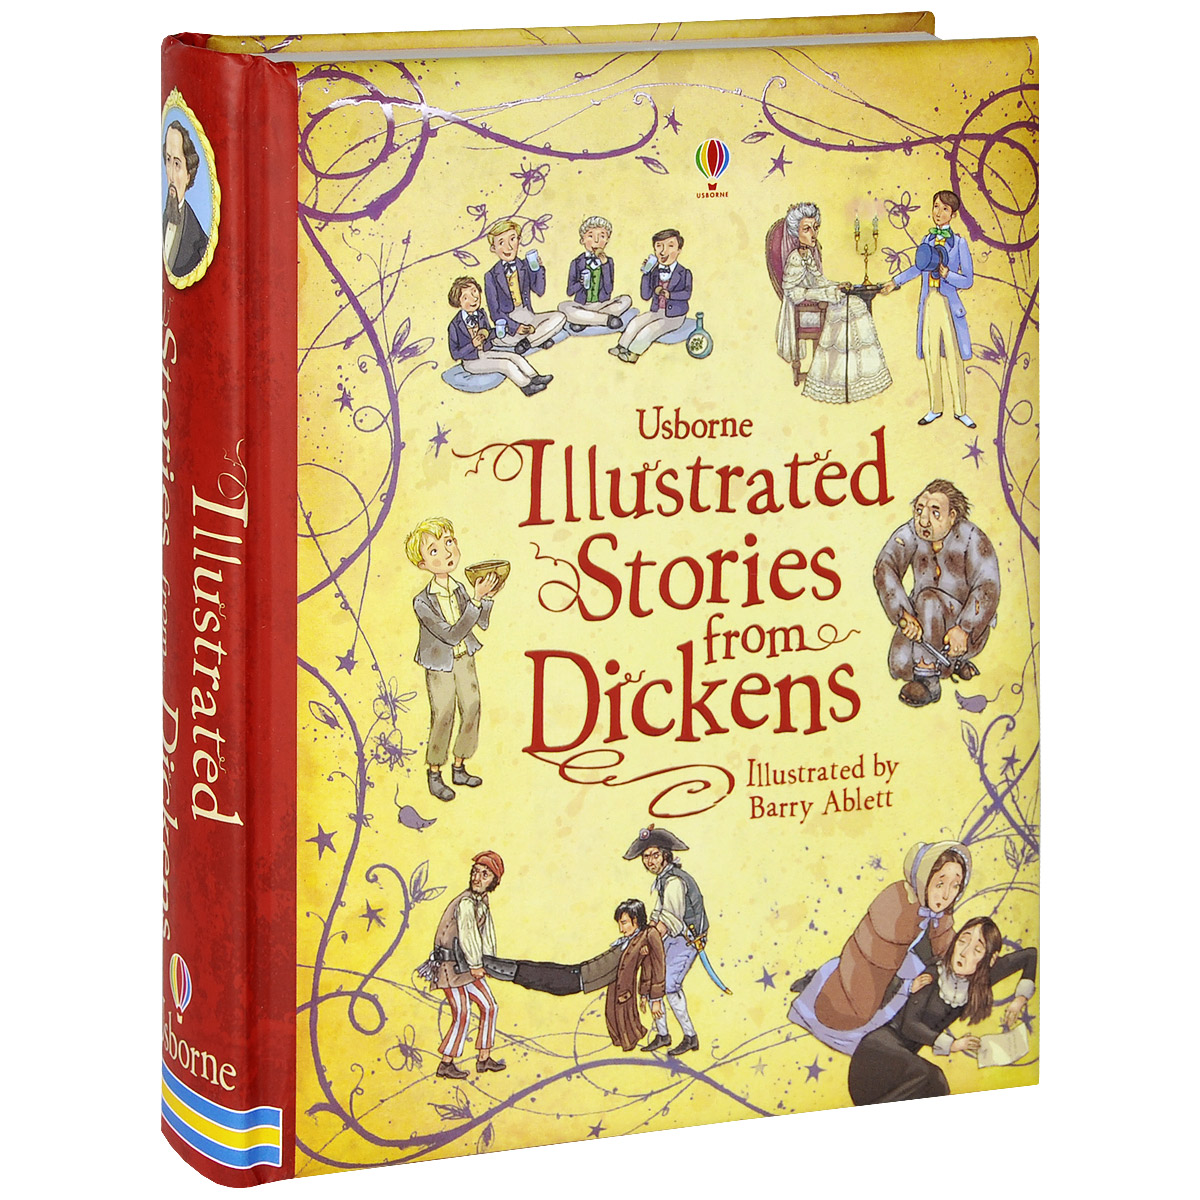 Illustrated Stories from Dickens  dickens charles dickens christmas stories кбс